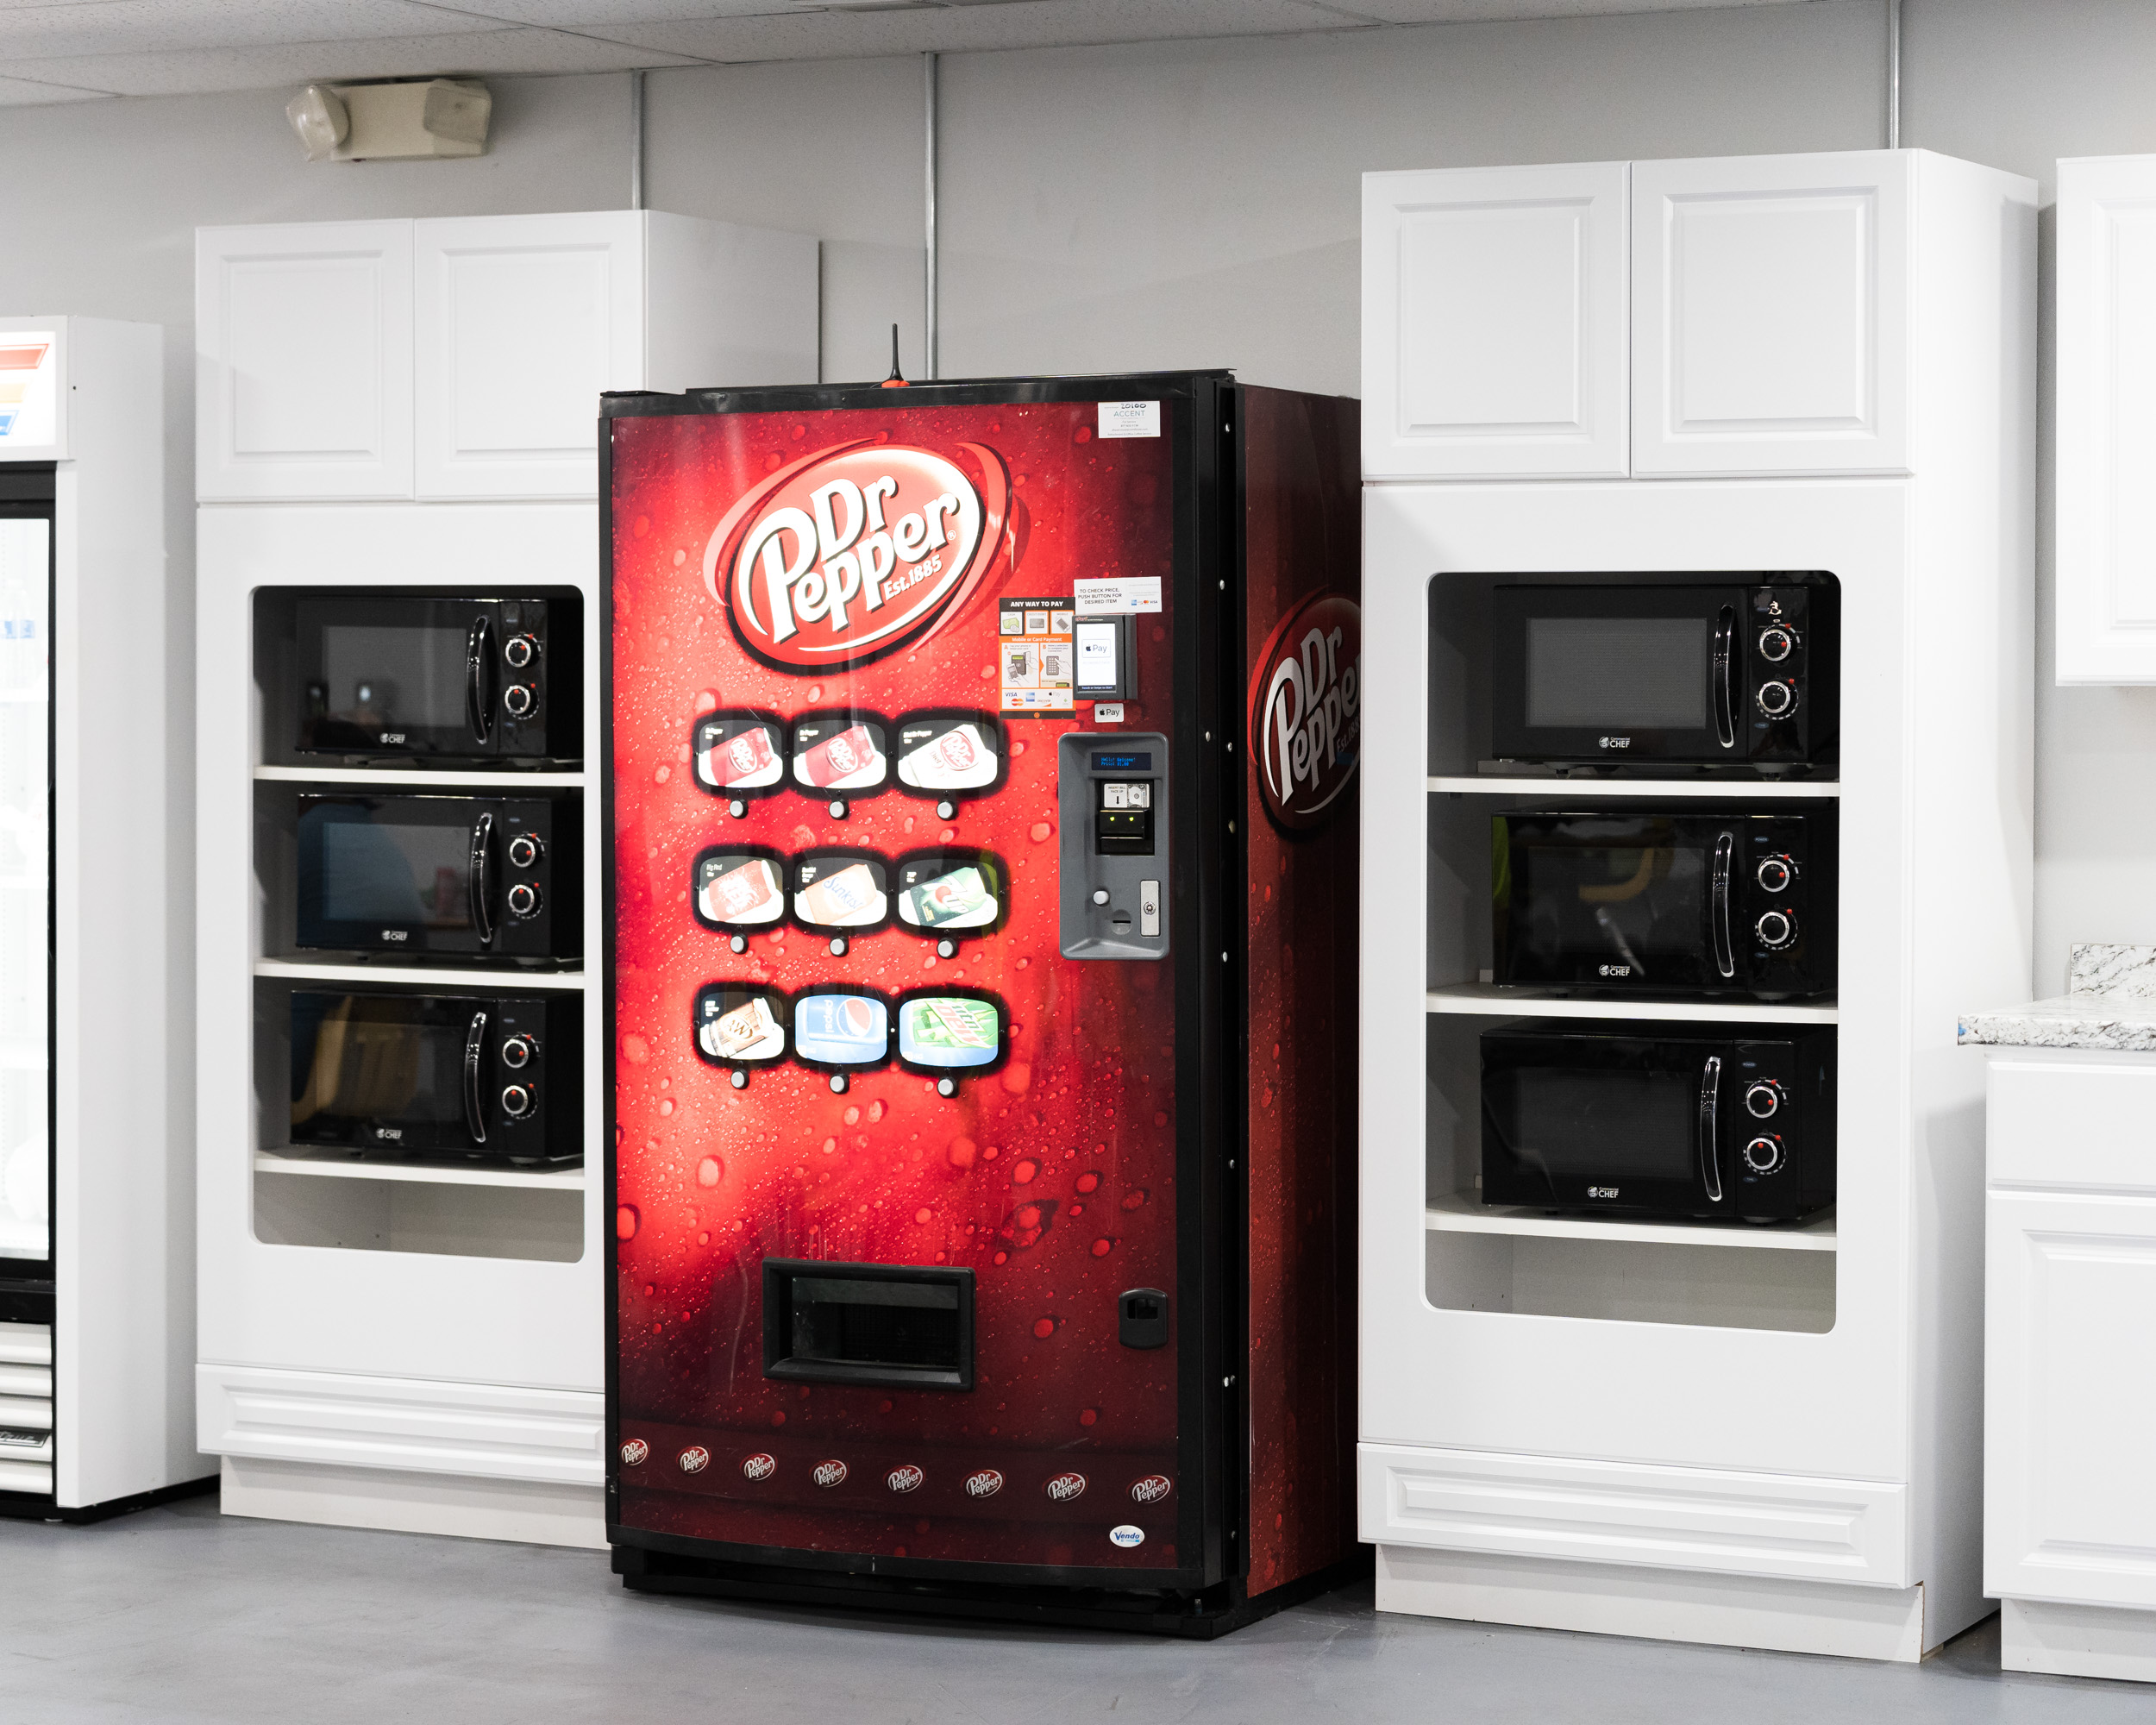 A red soda dispensing machine with six black microwaves next to it